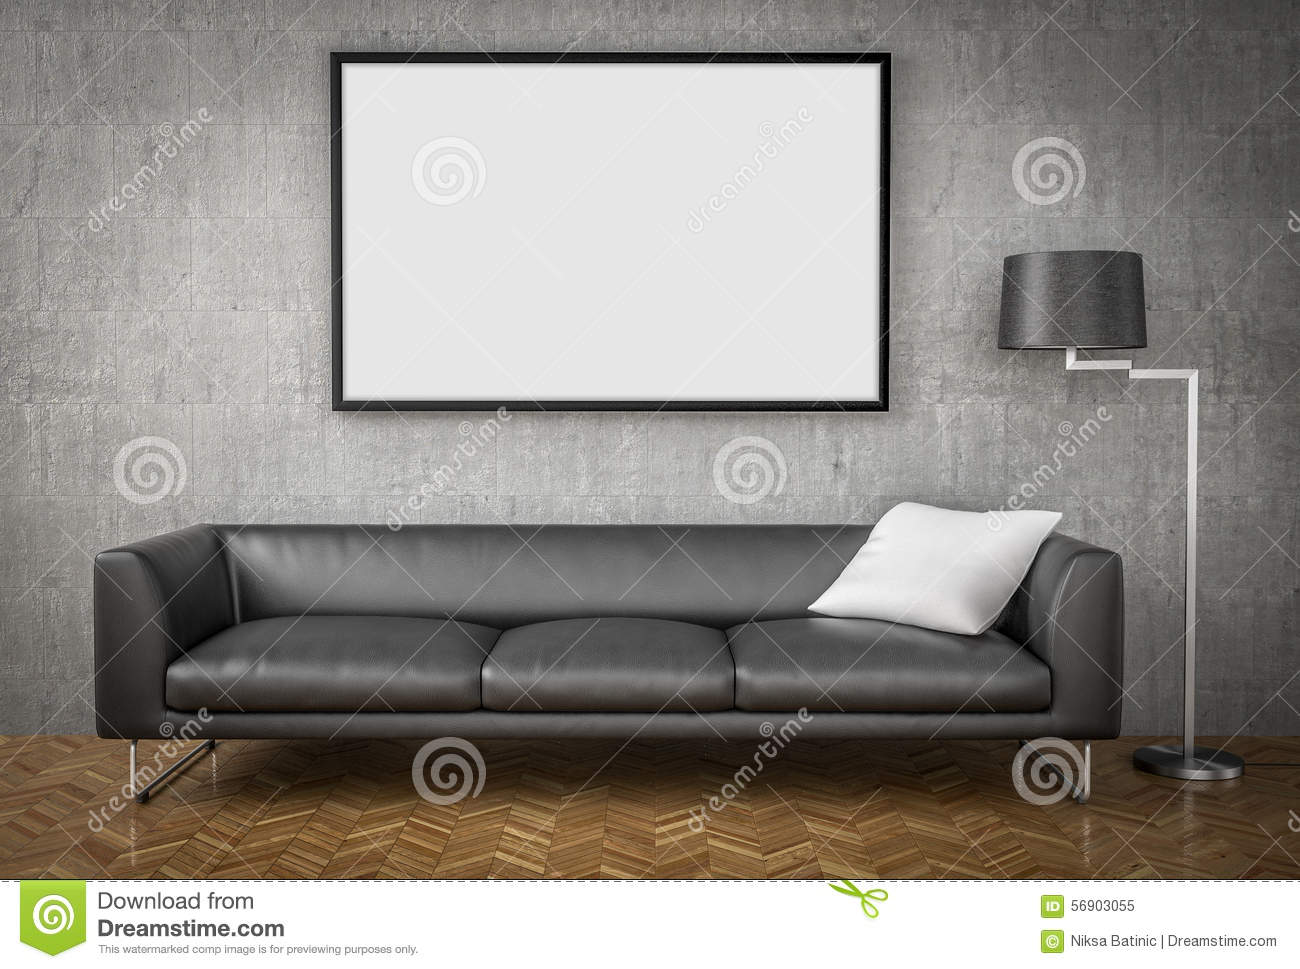 Mock up poster big sofa concrete wall background stock for Big sofa technologies